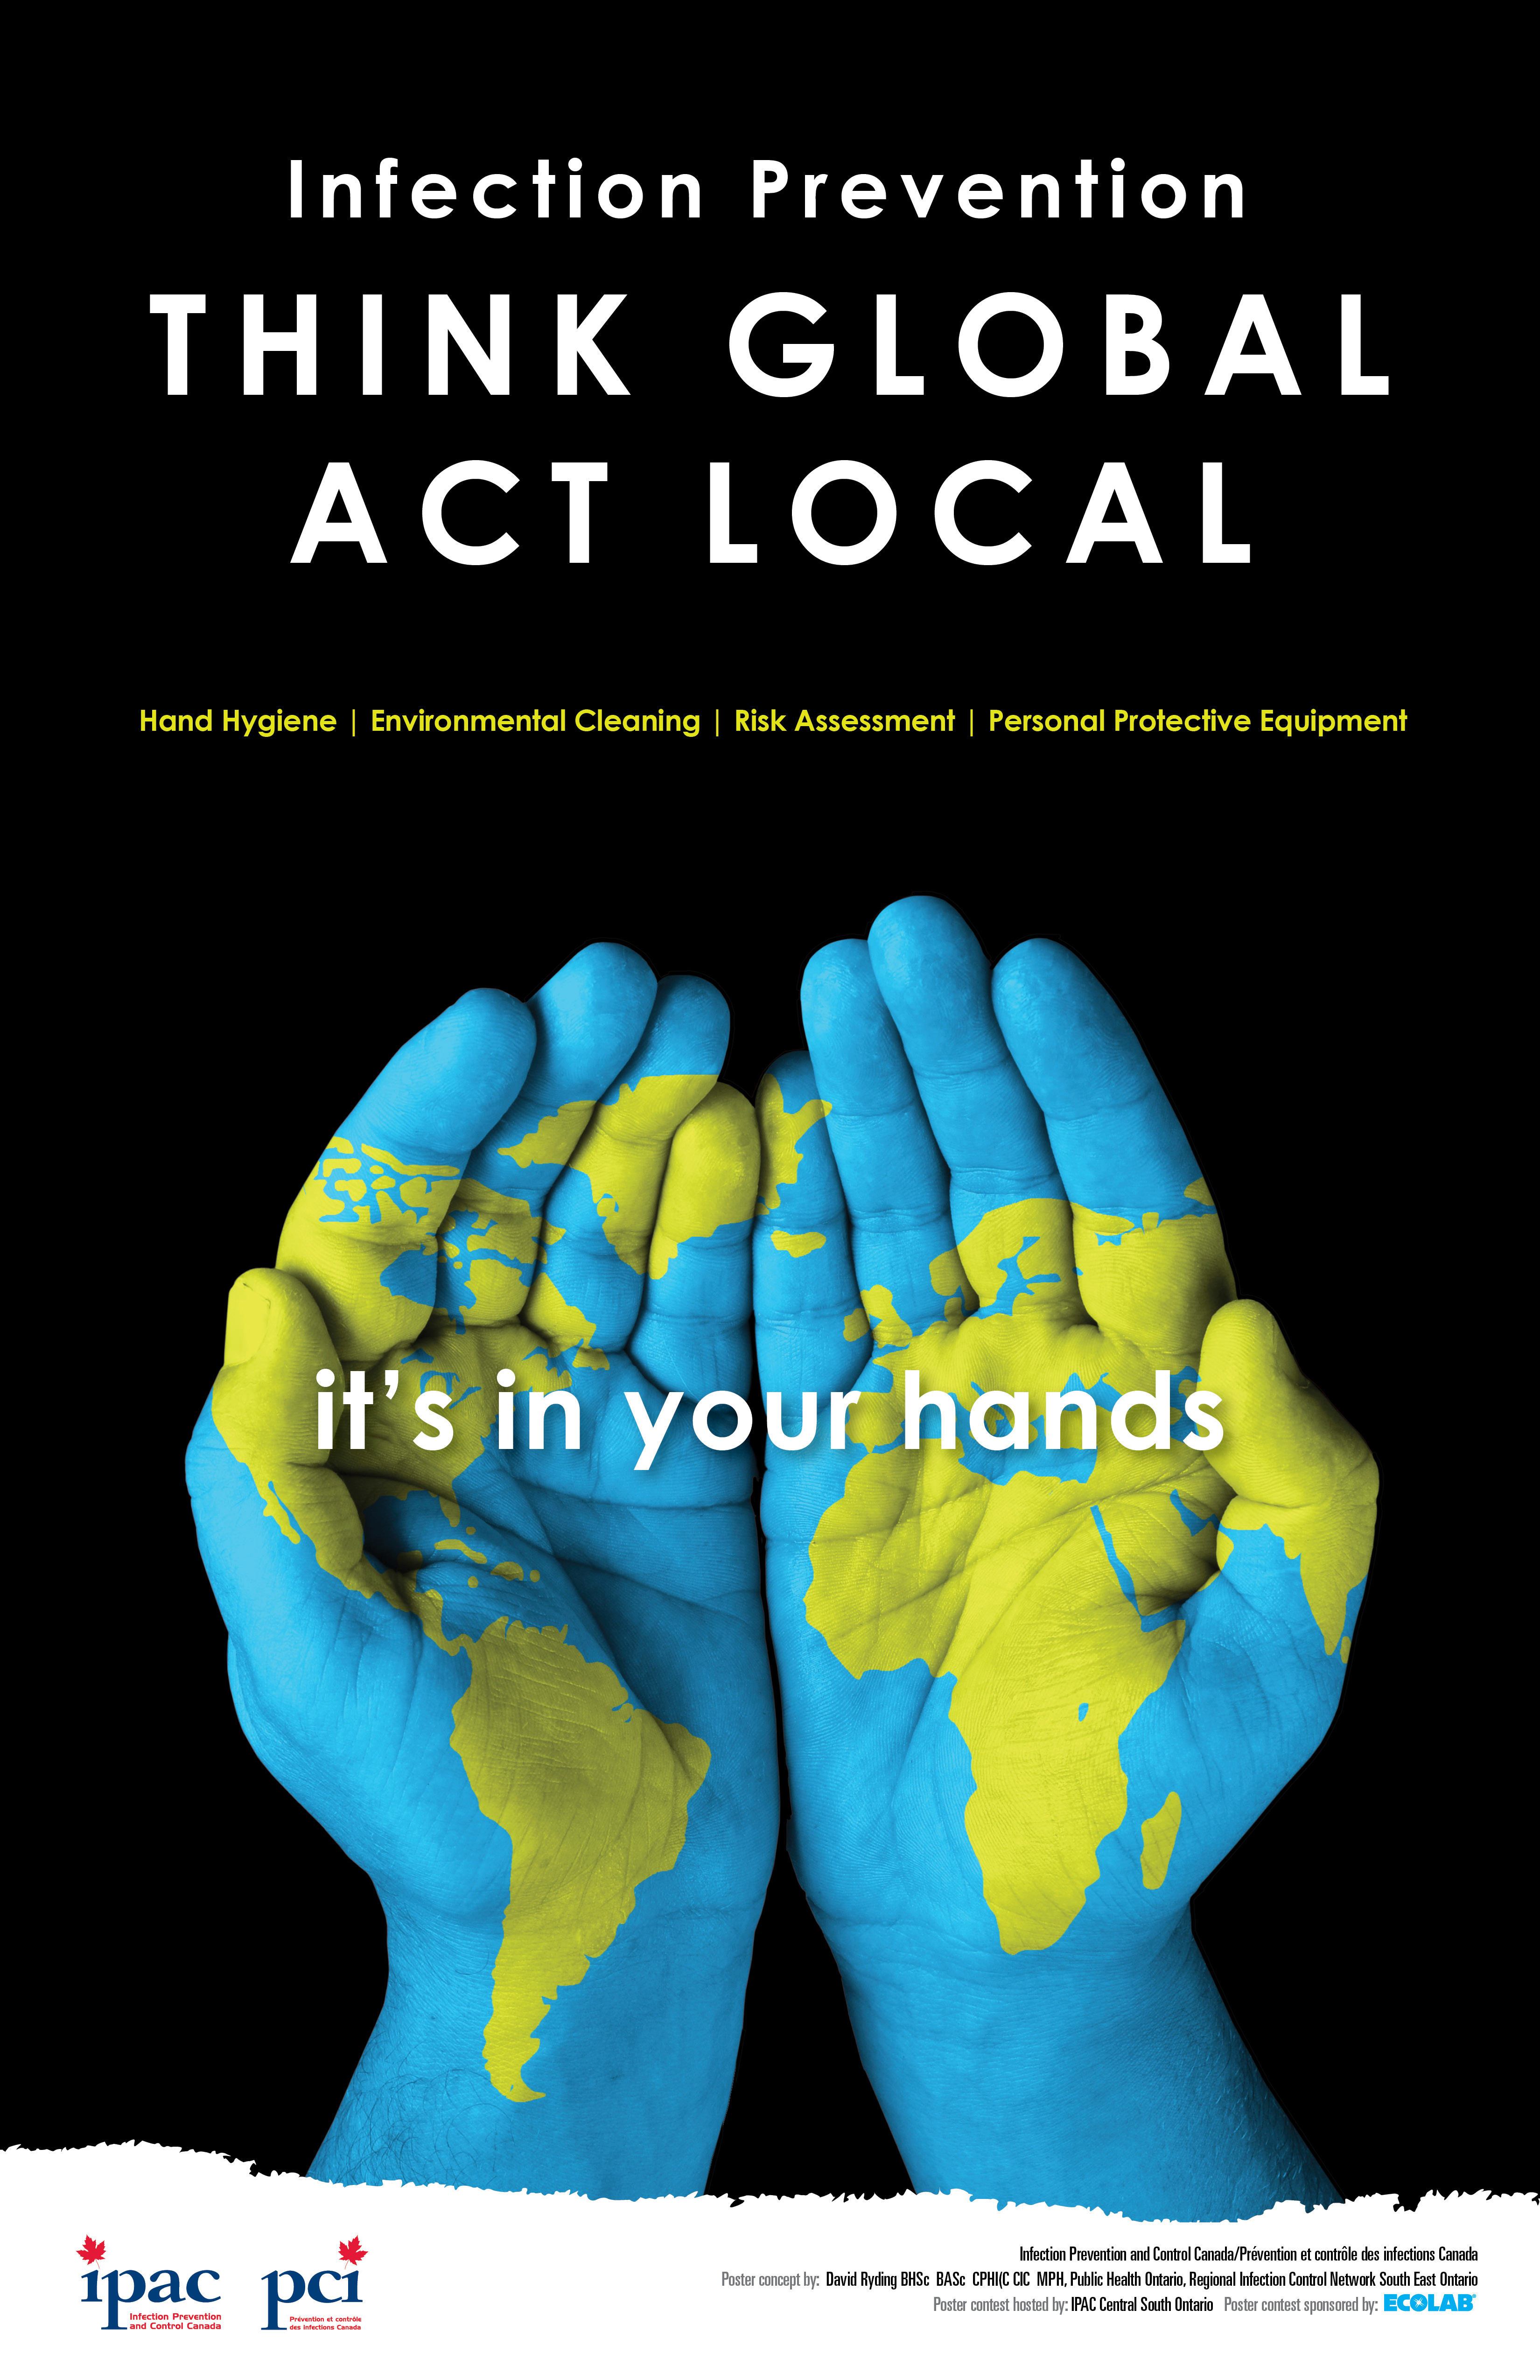 thinking globally and acting locally essay We adopted the slogan, think globally, act locally, which reminds us to address these global concerns by reducing, reusing and recycling discarded items at a local level.